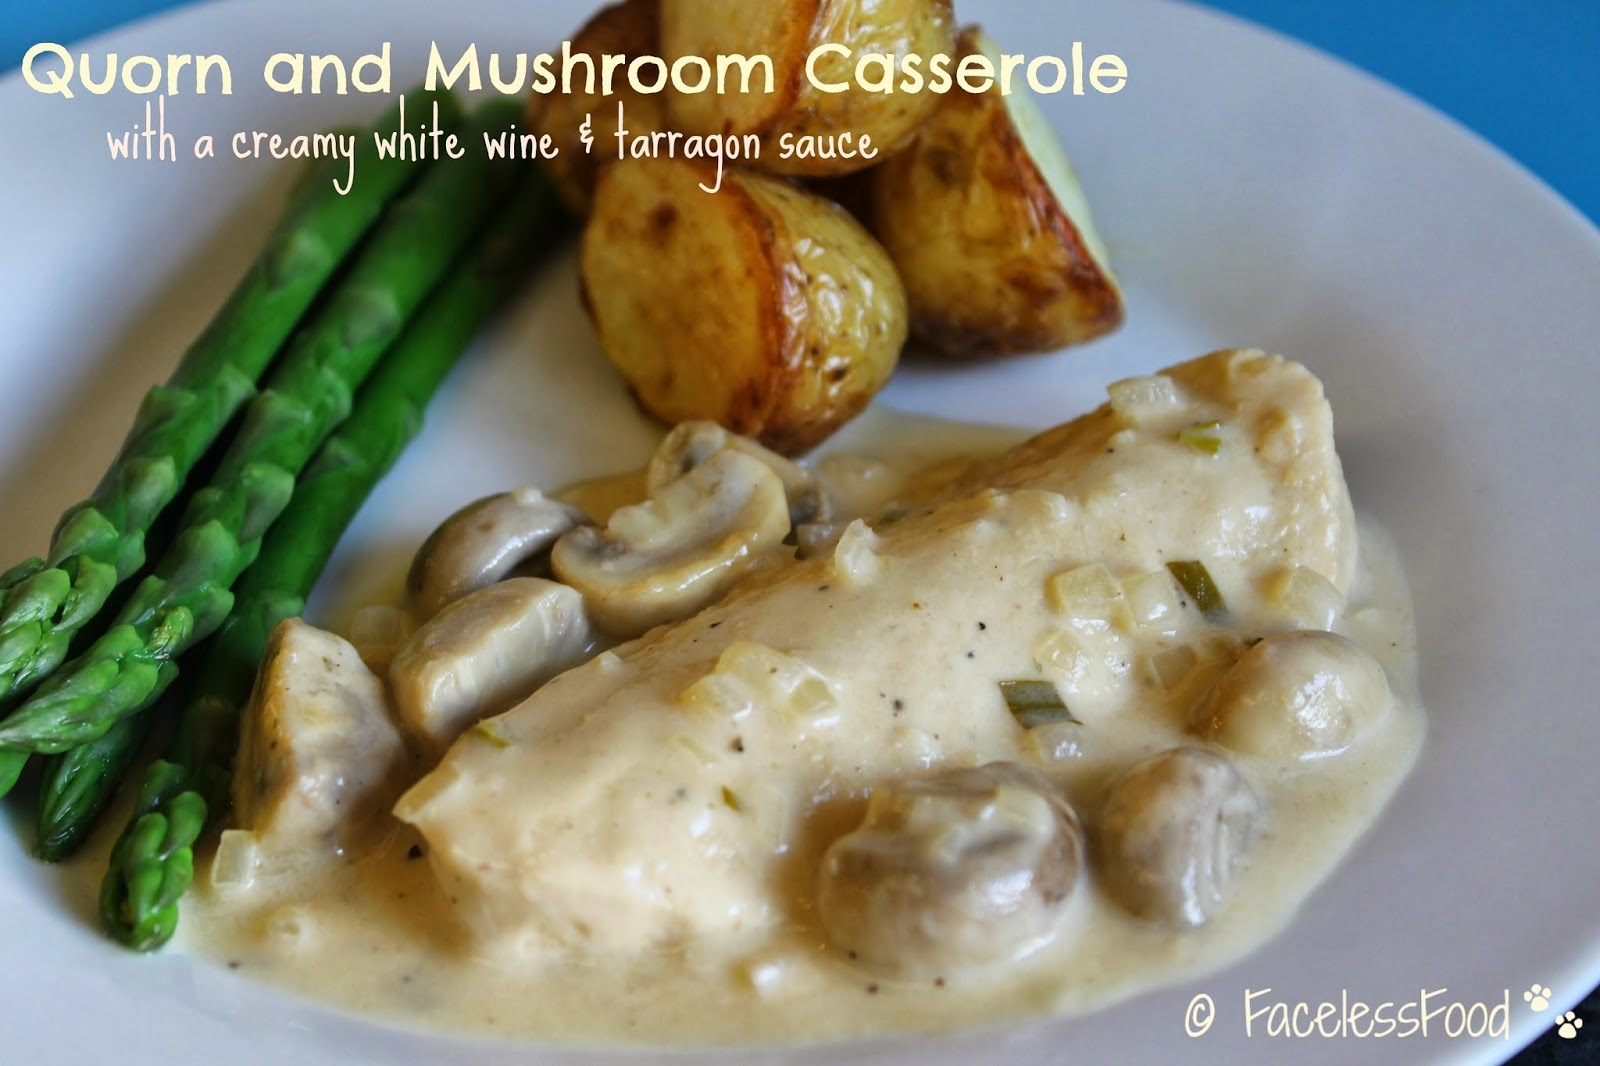 Quorn and Mushrooms in a White Wine & Tarragon Sauce